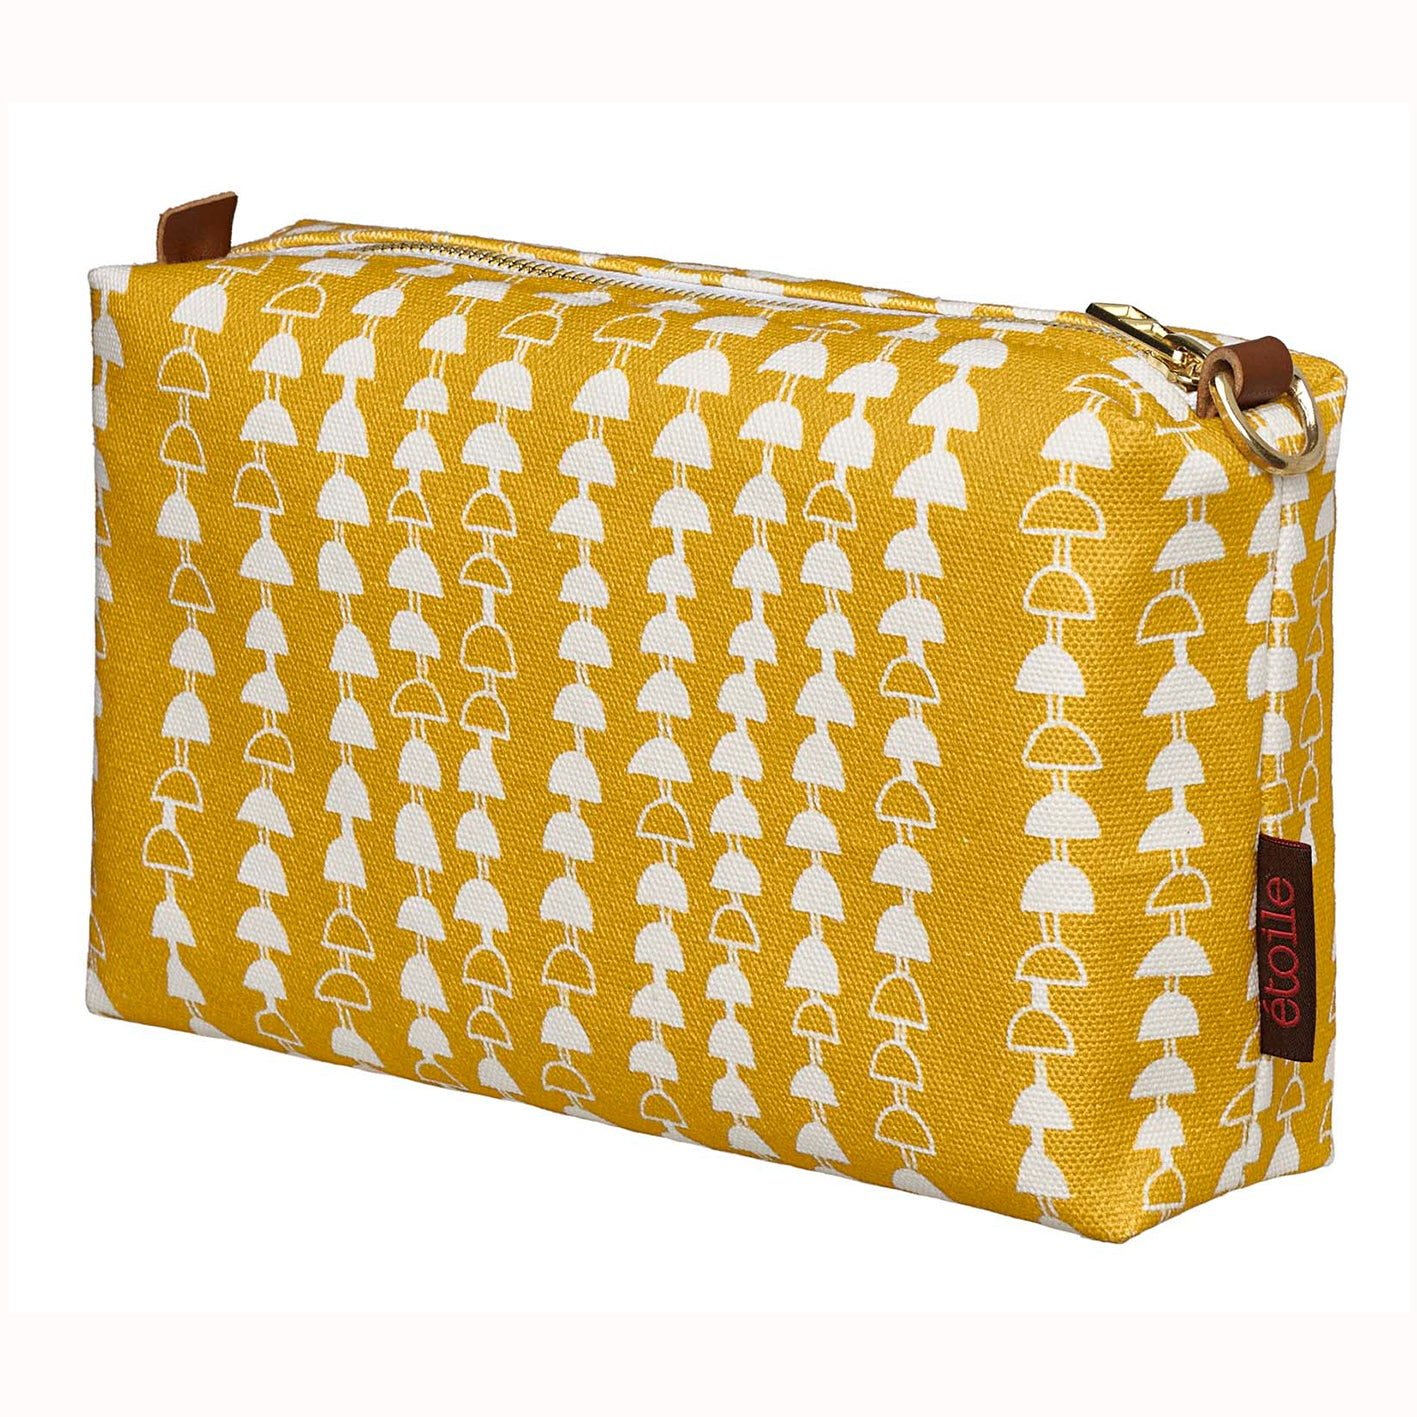 Hopi Graphic Pattern Canvas Toiletry Wash or Travel Bag in Mustard Gold Perfect for cosmetics, shave and travel kit Ships from Canada (USA)